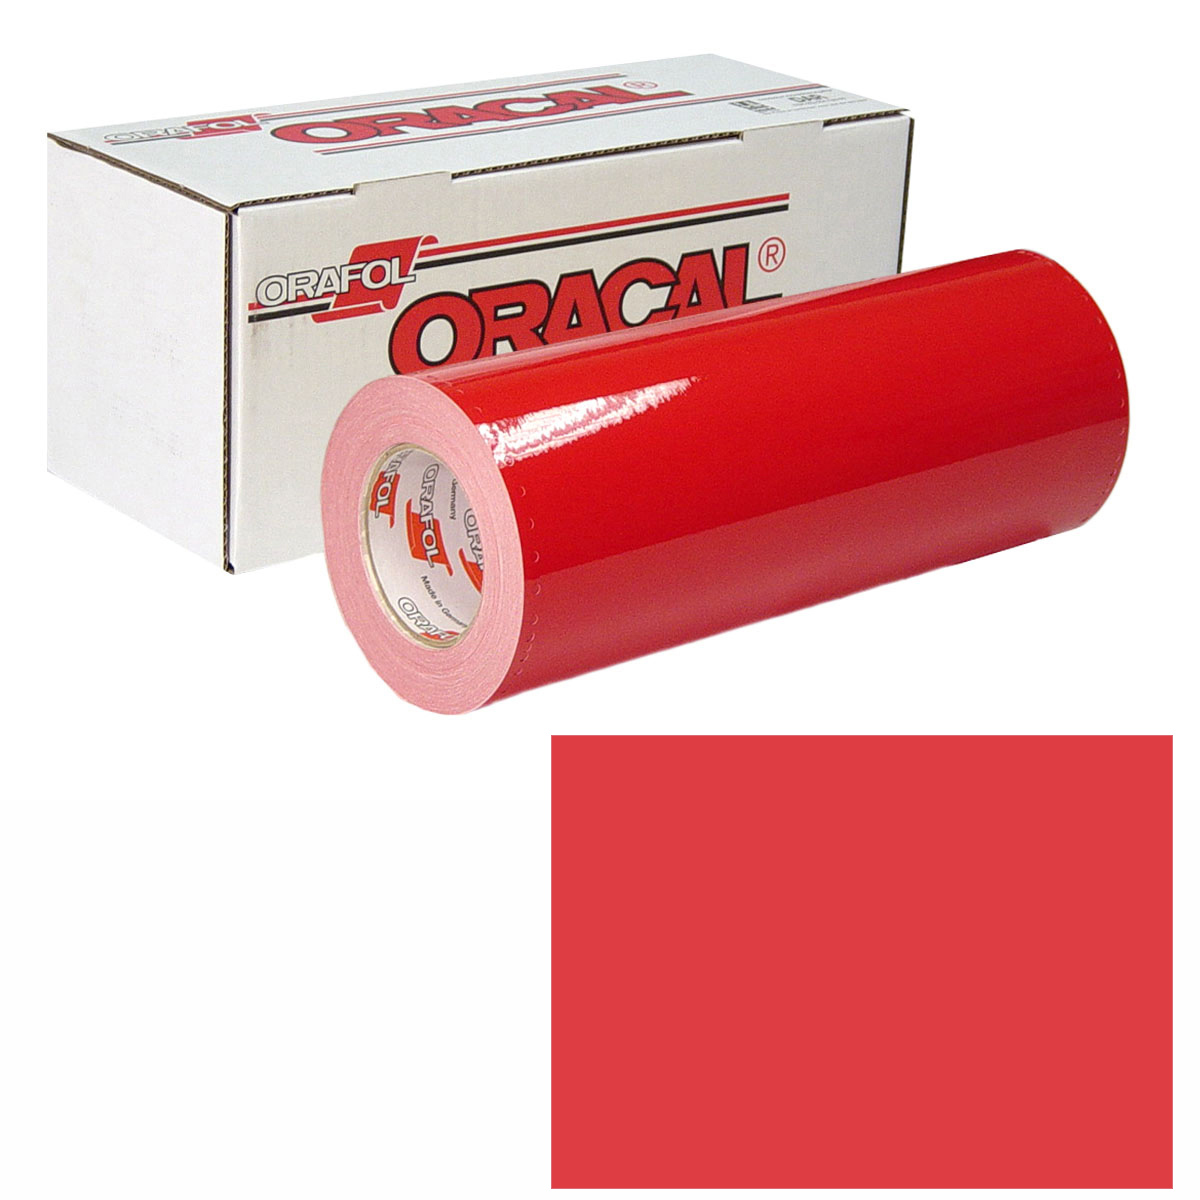 ORACAL 951 15In X 50Yd 347 Red Coral